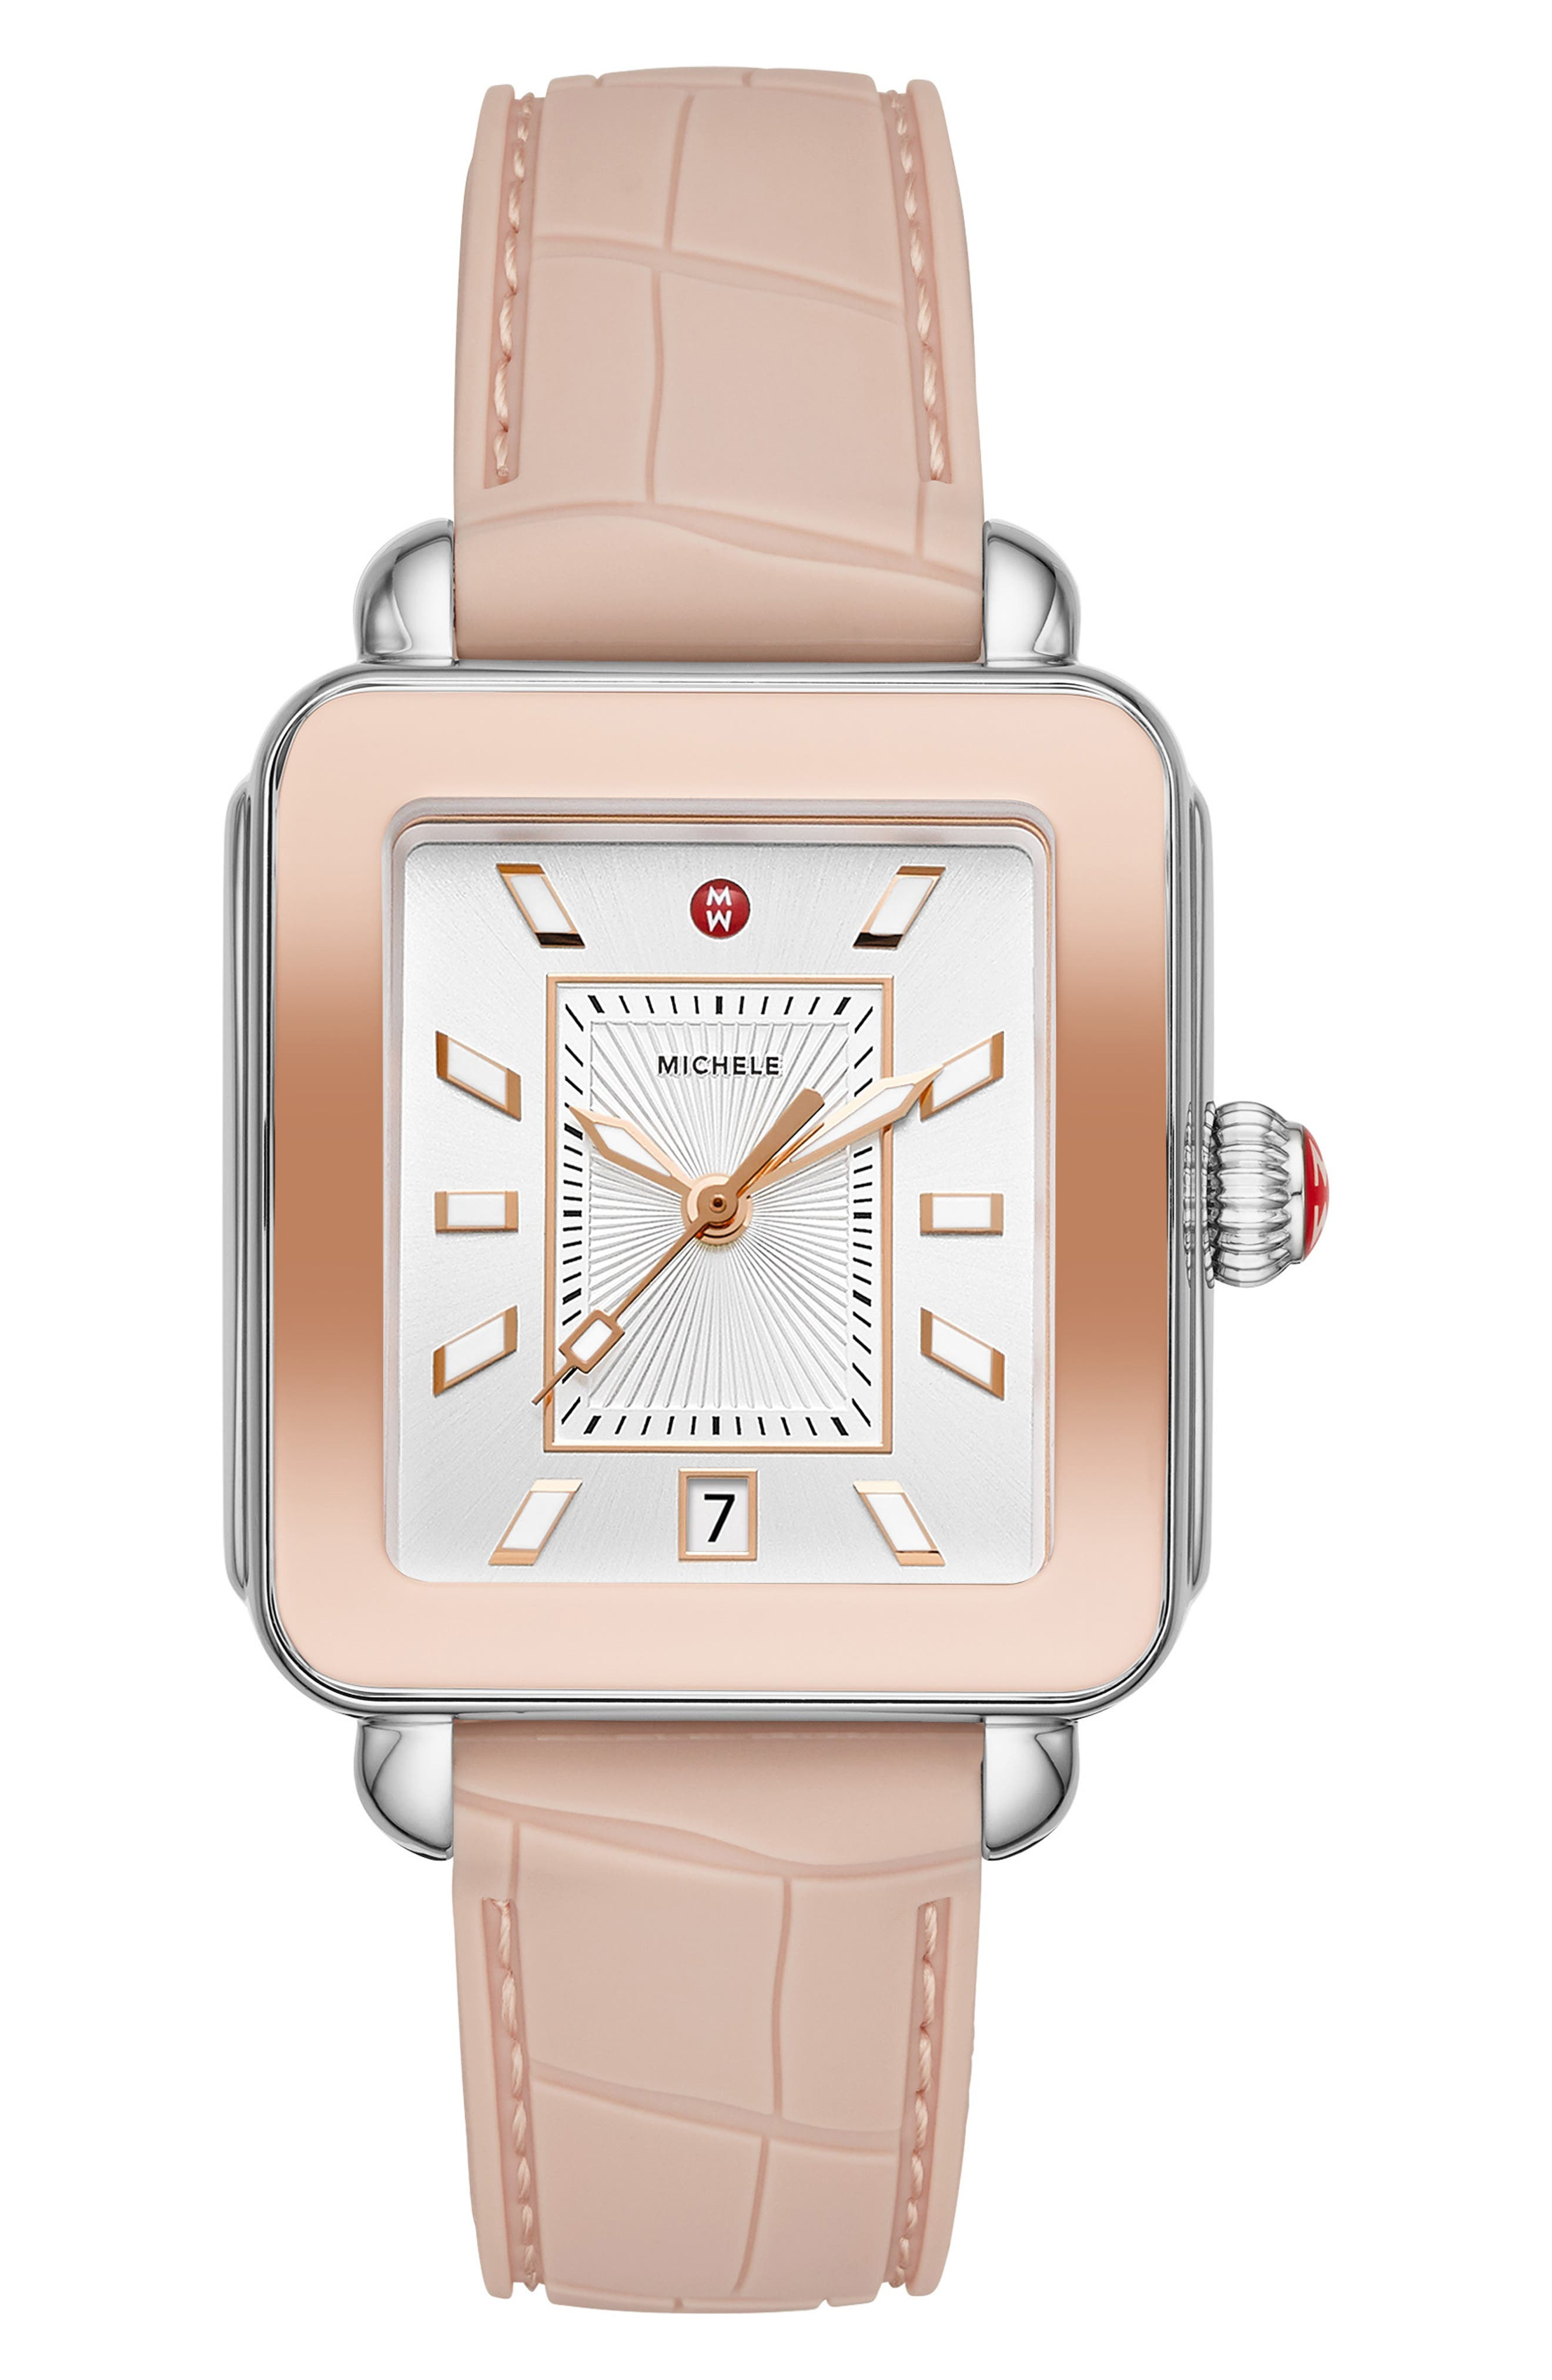 MICHELE Deco Sport Watch Head & Silicone Strap Watch, 34mm x 36mm, Main, color, PINK/ SILVER SUNRAY/ PINK GOLD